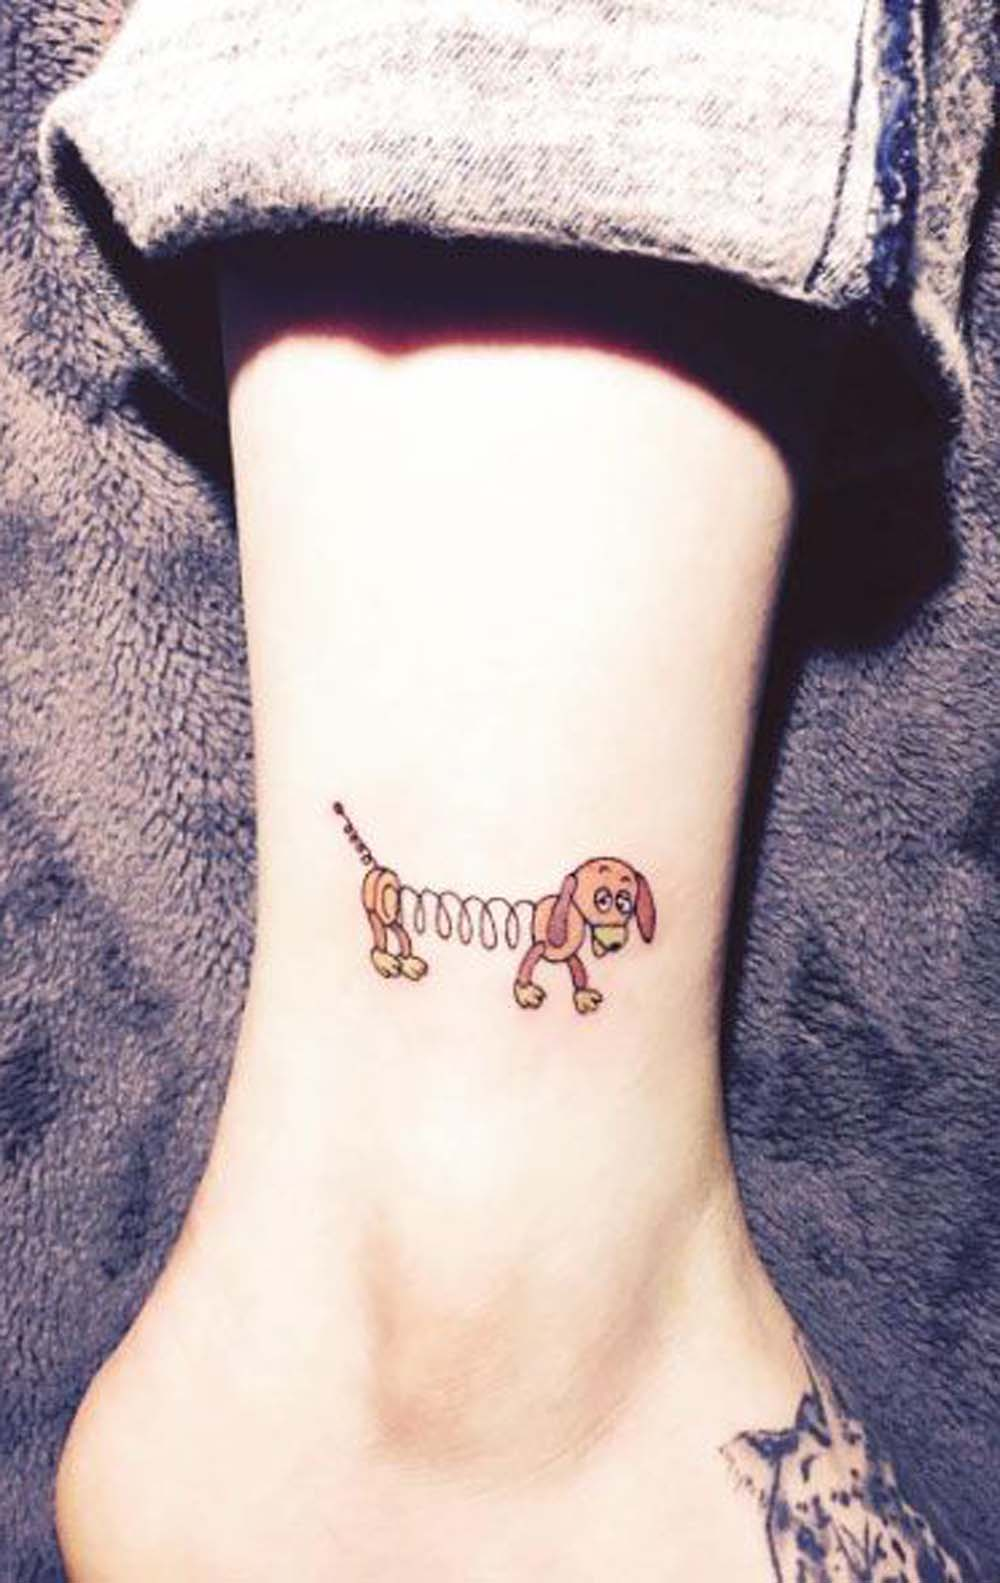 Small Toy Story Slinky Dog Ankle Tattoo Ideas for Women - small dog ankle tattoo ideas for teenagers Edit  small dog ankle tattoo ideas for teenagers  ideas pequeñas del tatuaje del tobillo del perro para adolescentes - www.MyBodiArt.com